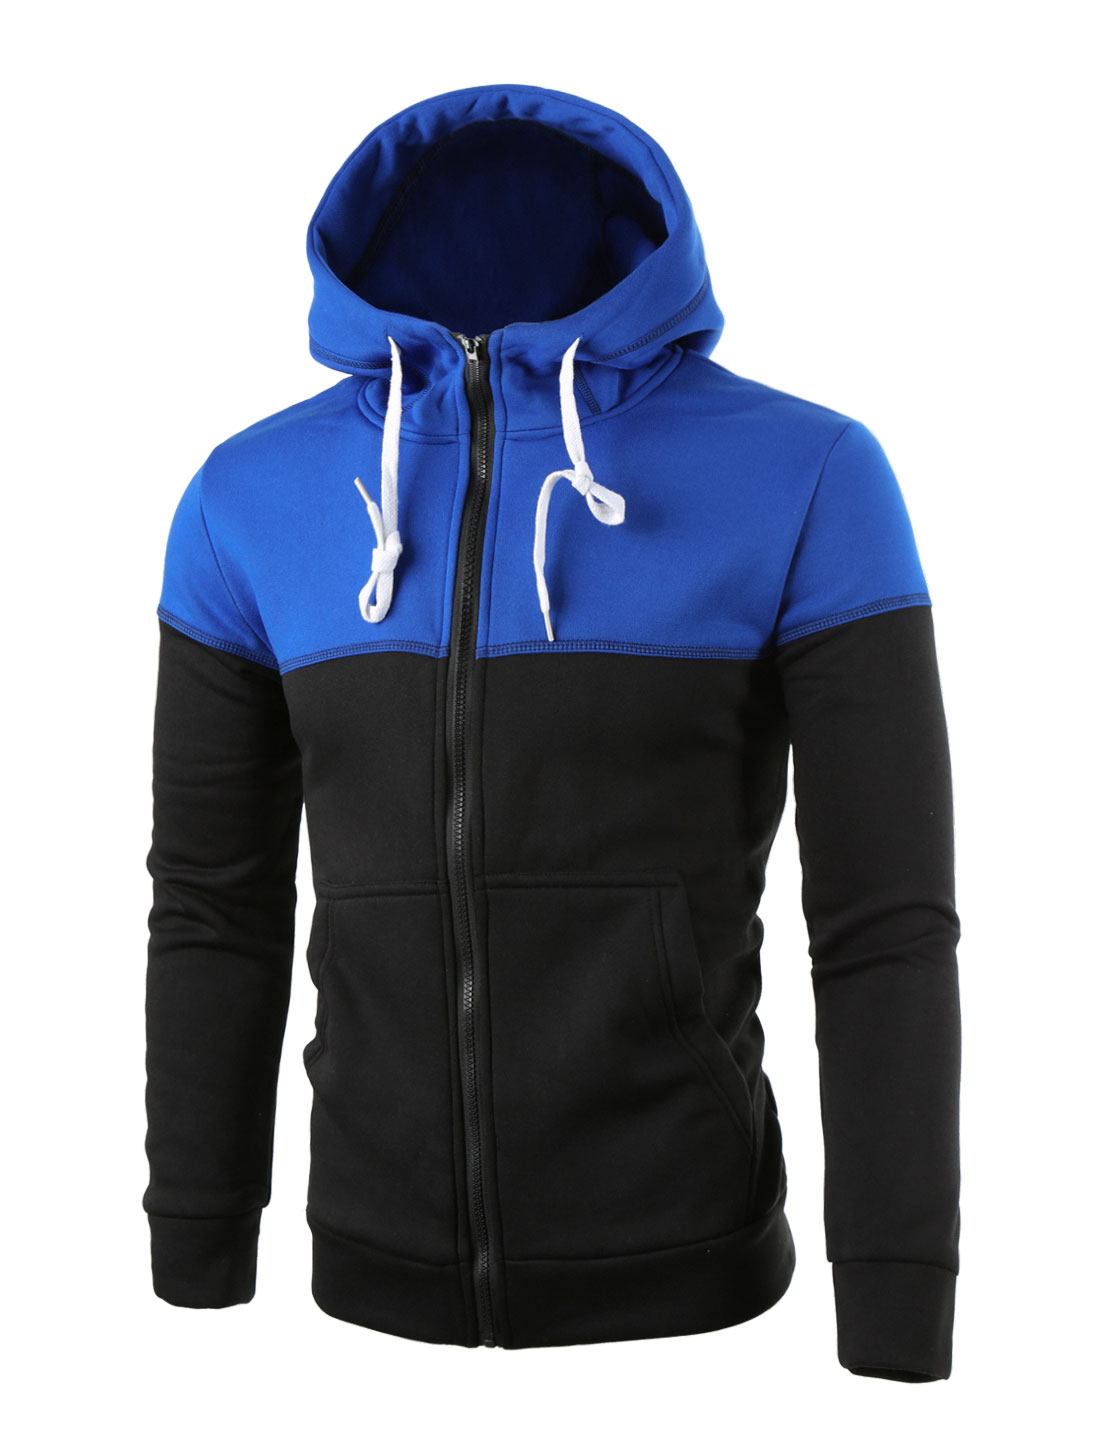 Men Long Sleeves Zip Up Front Pockets Slim Fit Hooded Jacket L Blue